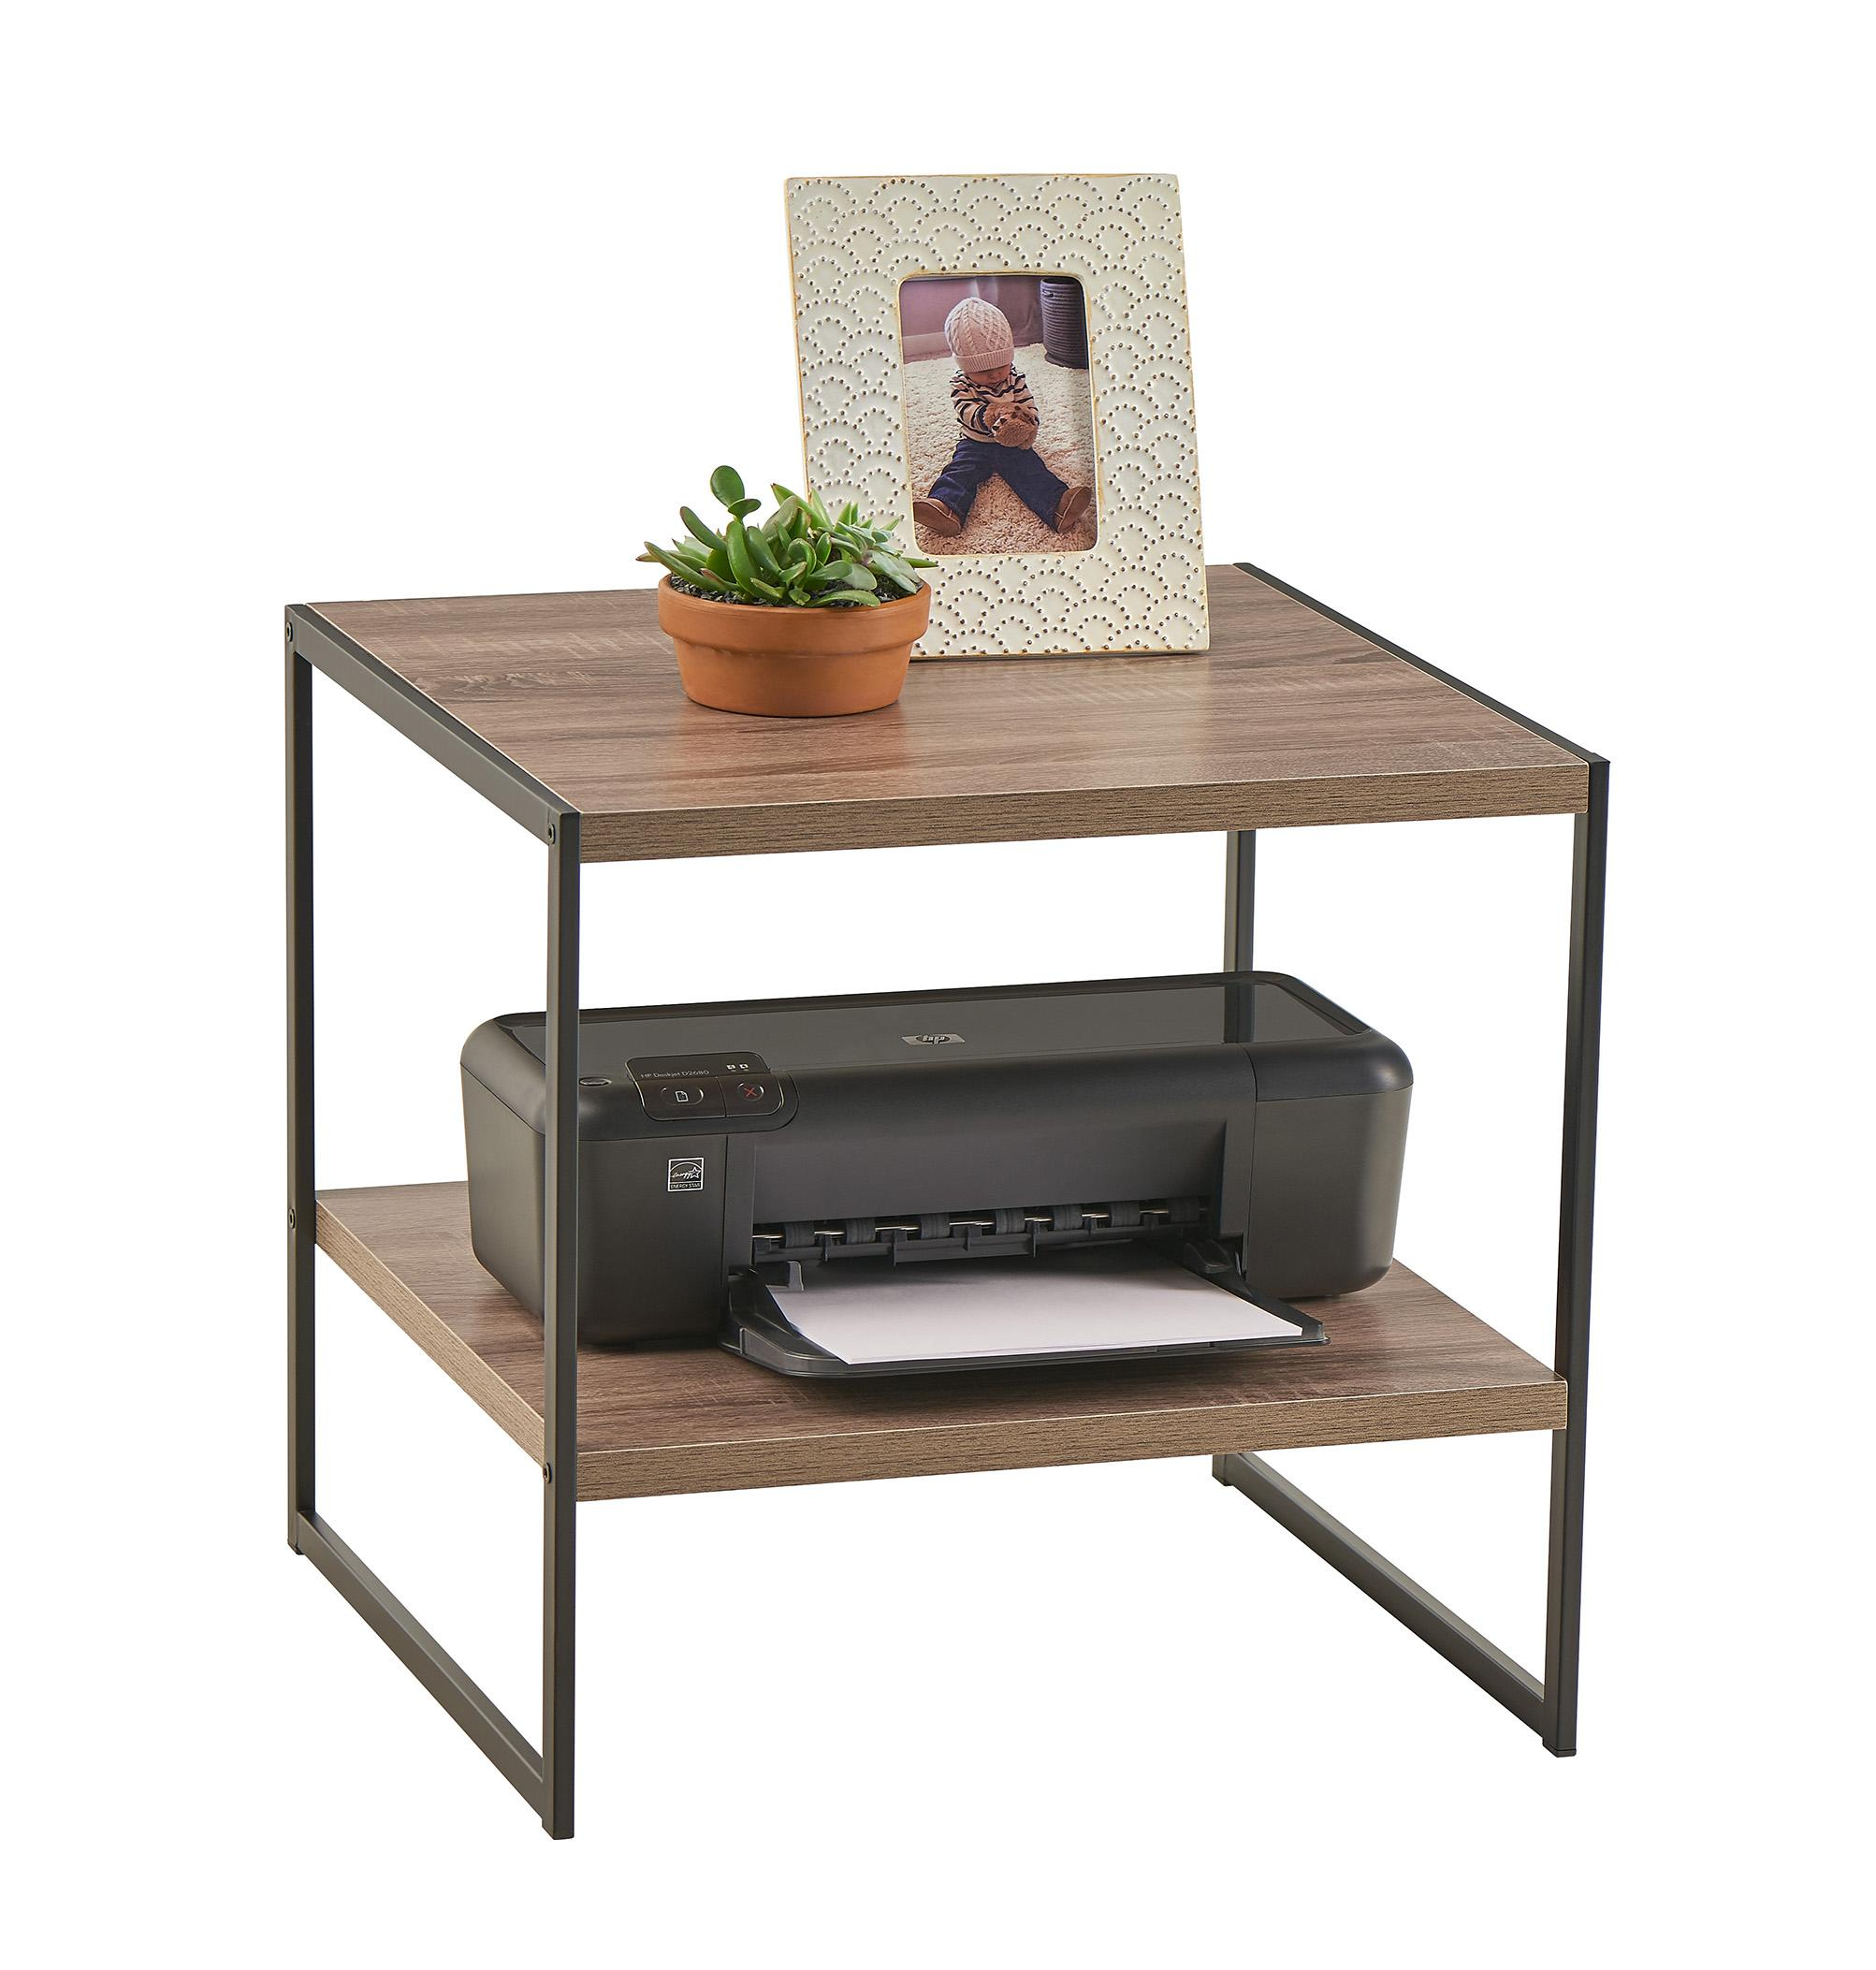 Amazon.com: ClosetMaid 1314 2-Tier Square Wood Side Table with ...